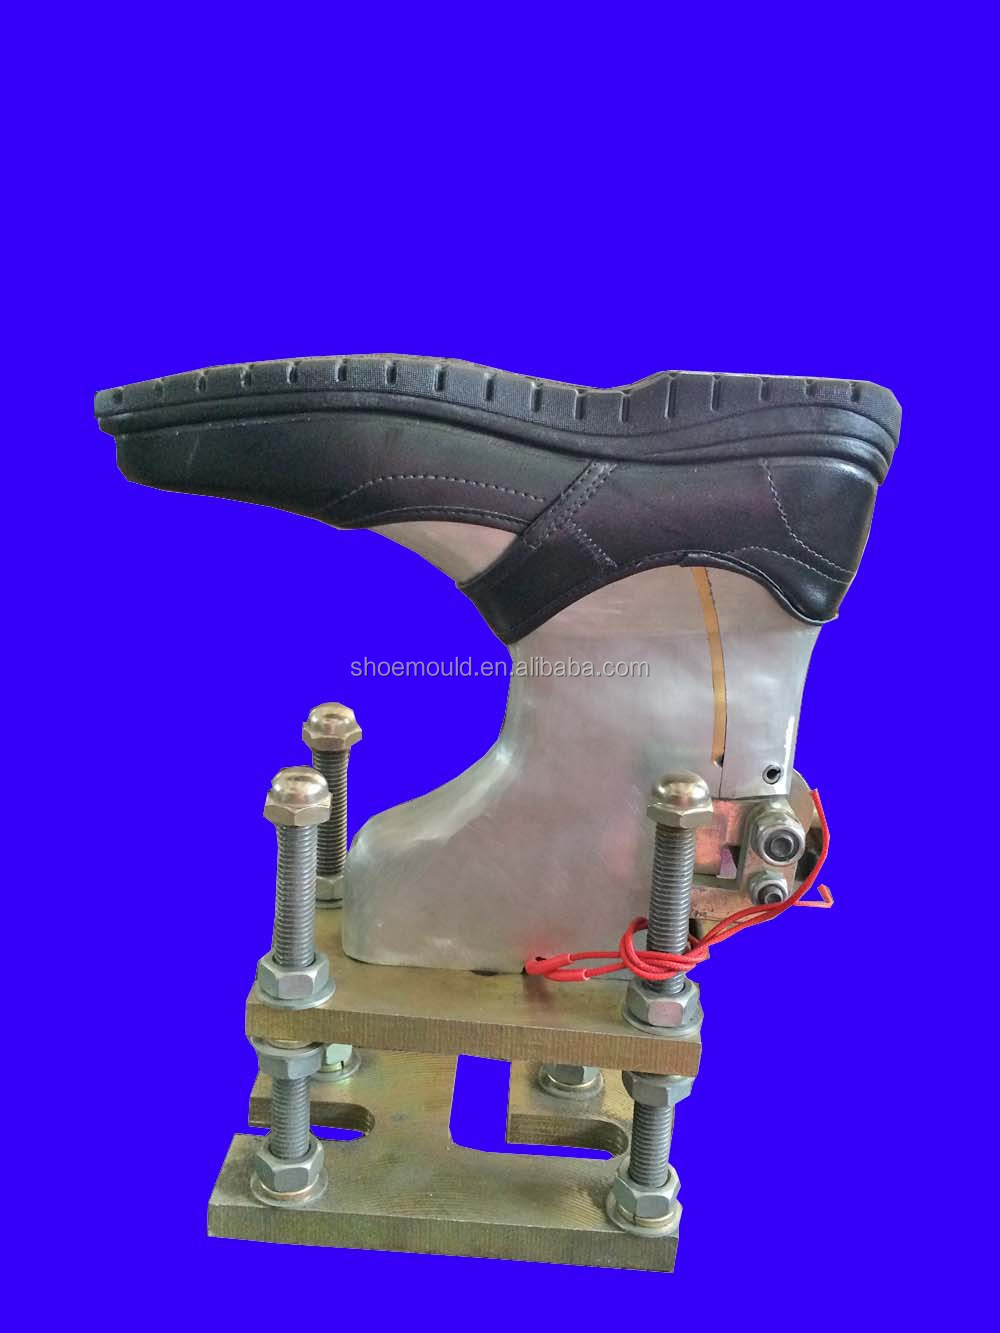 2016 PVC School Shoe Injection Shoe Mould Fitted for Chengfeng PVC Shoe Injection Machine